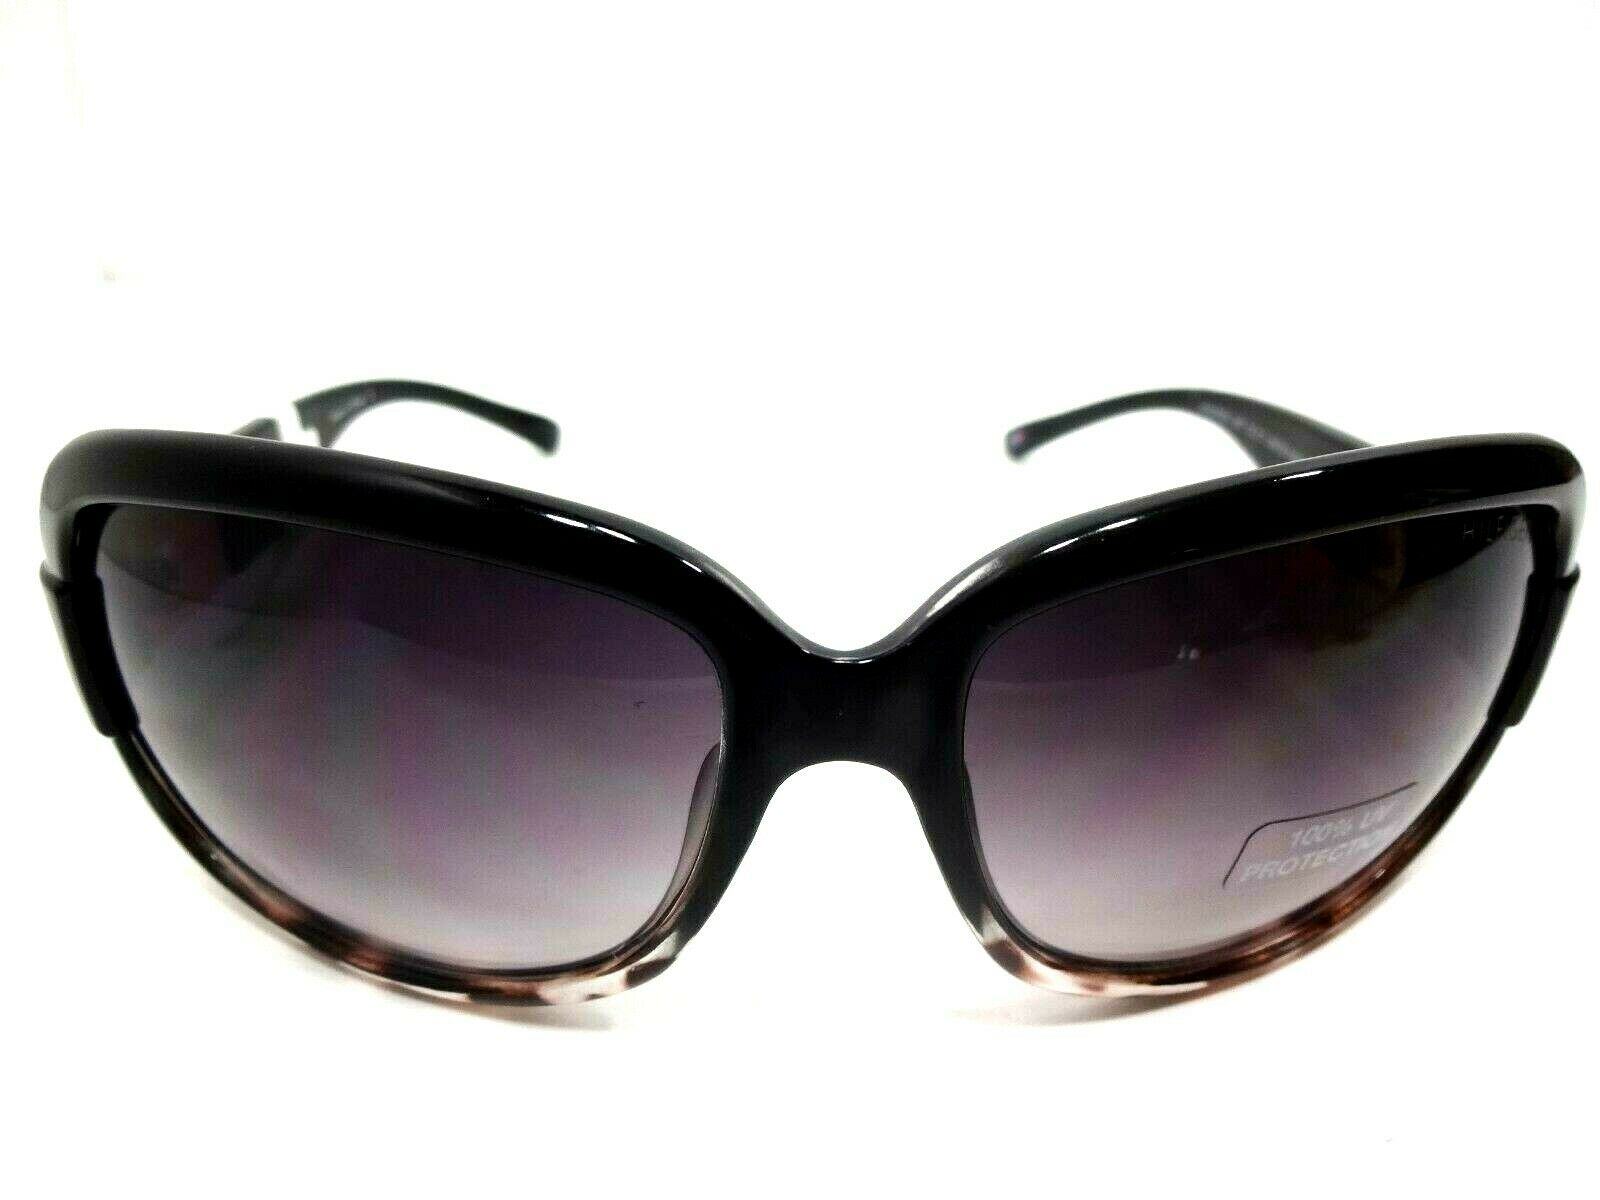 ***TOMMY HILFIGER LADIES OVERSIZED SUNGLASSES, BRAND NEW AND AUTHENTIC!